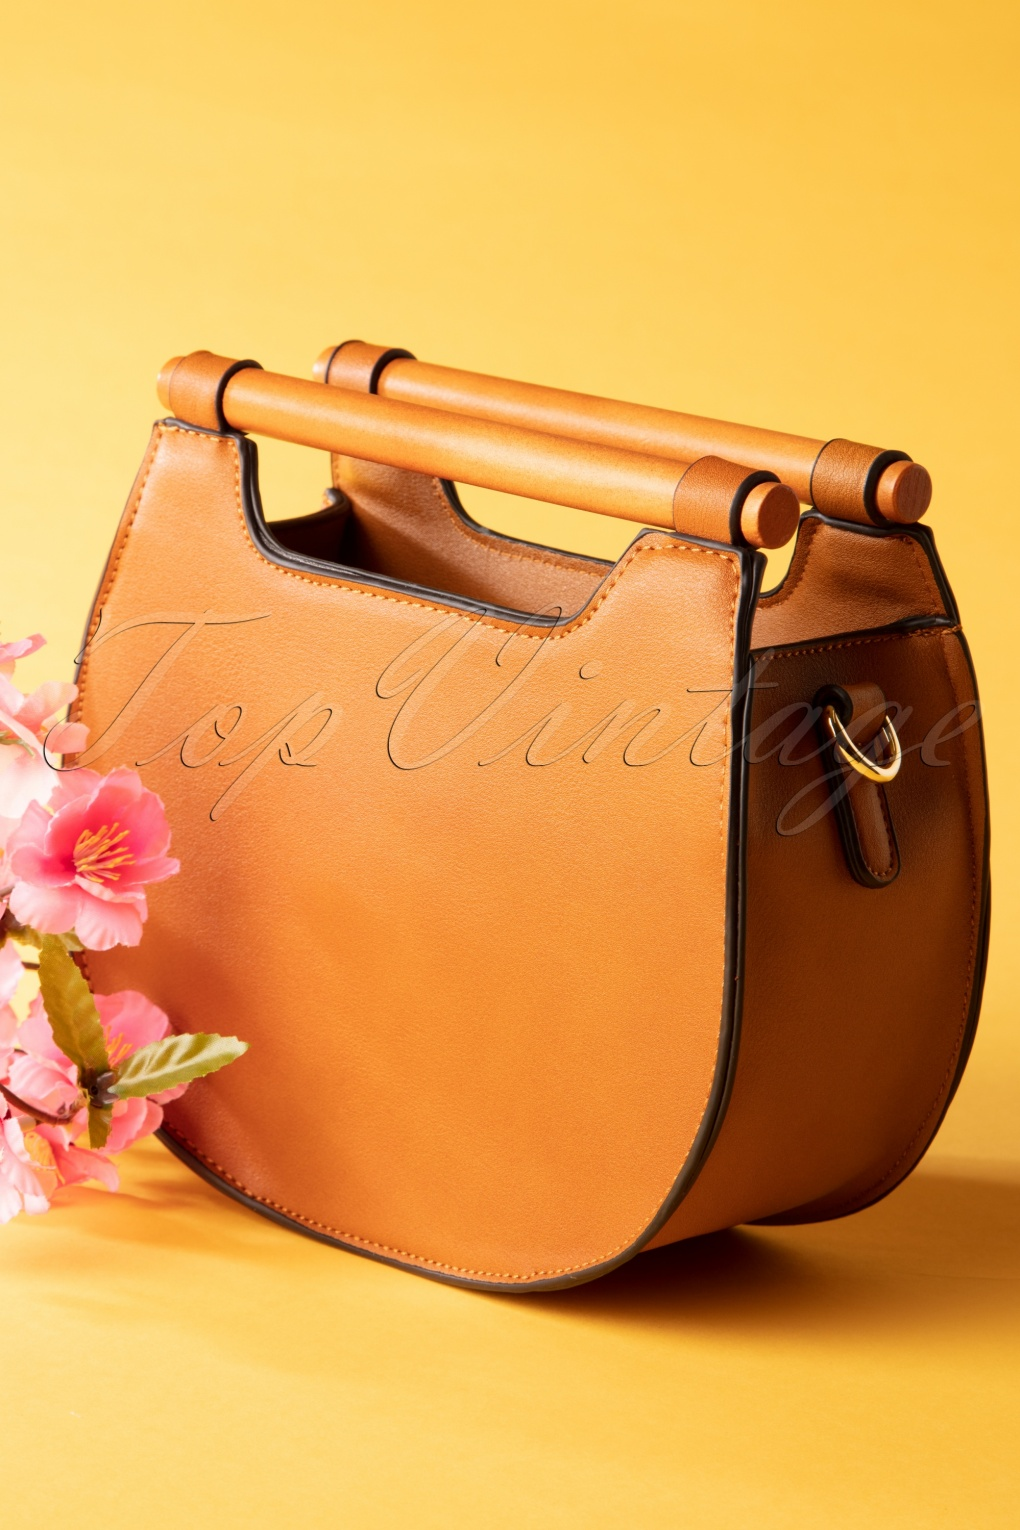 Vintage & Retro Handbags, Purses, Wallets, Bags 70s Jones Crossbody Bag in Brown �48.53 AT vintagedancer.com